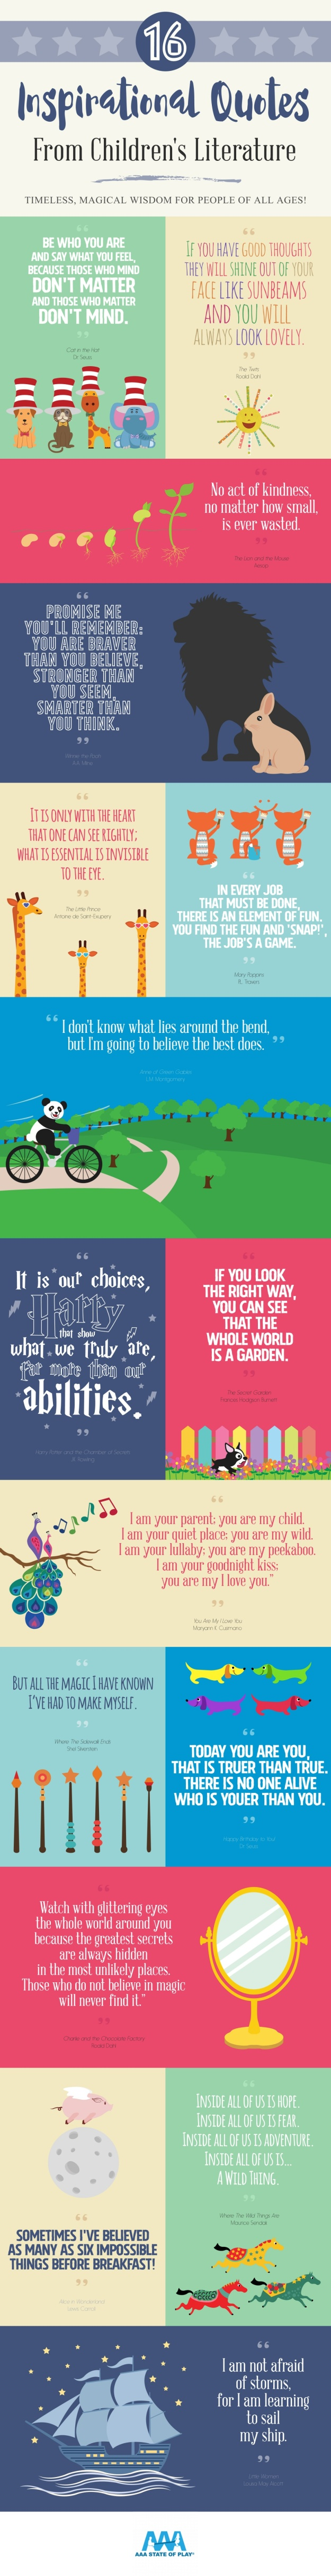 16 Inspirational Quotes from Childrens Literature